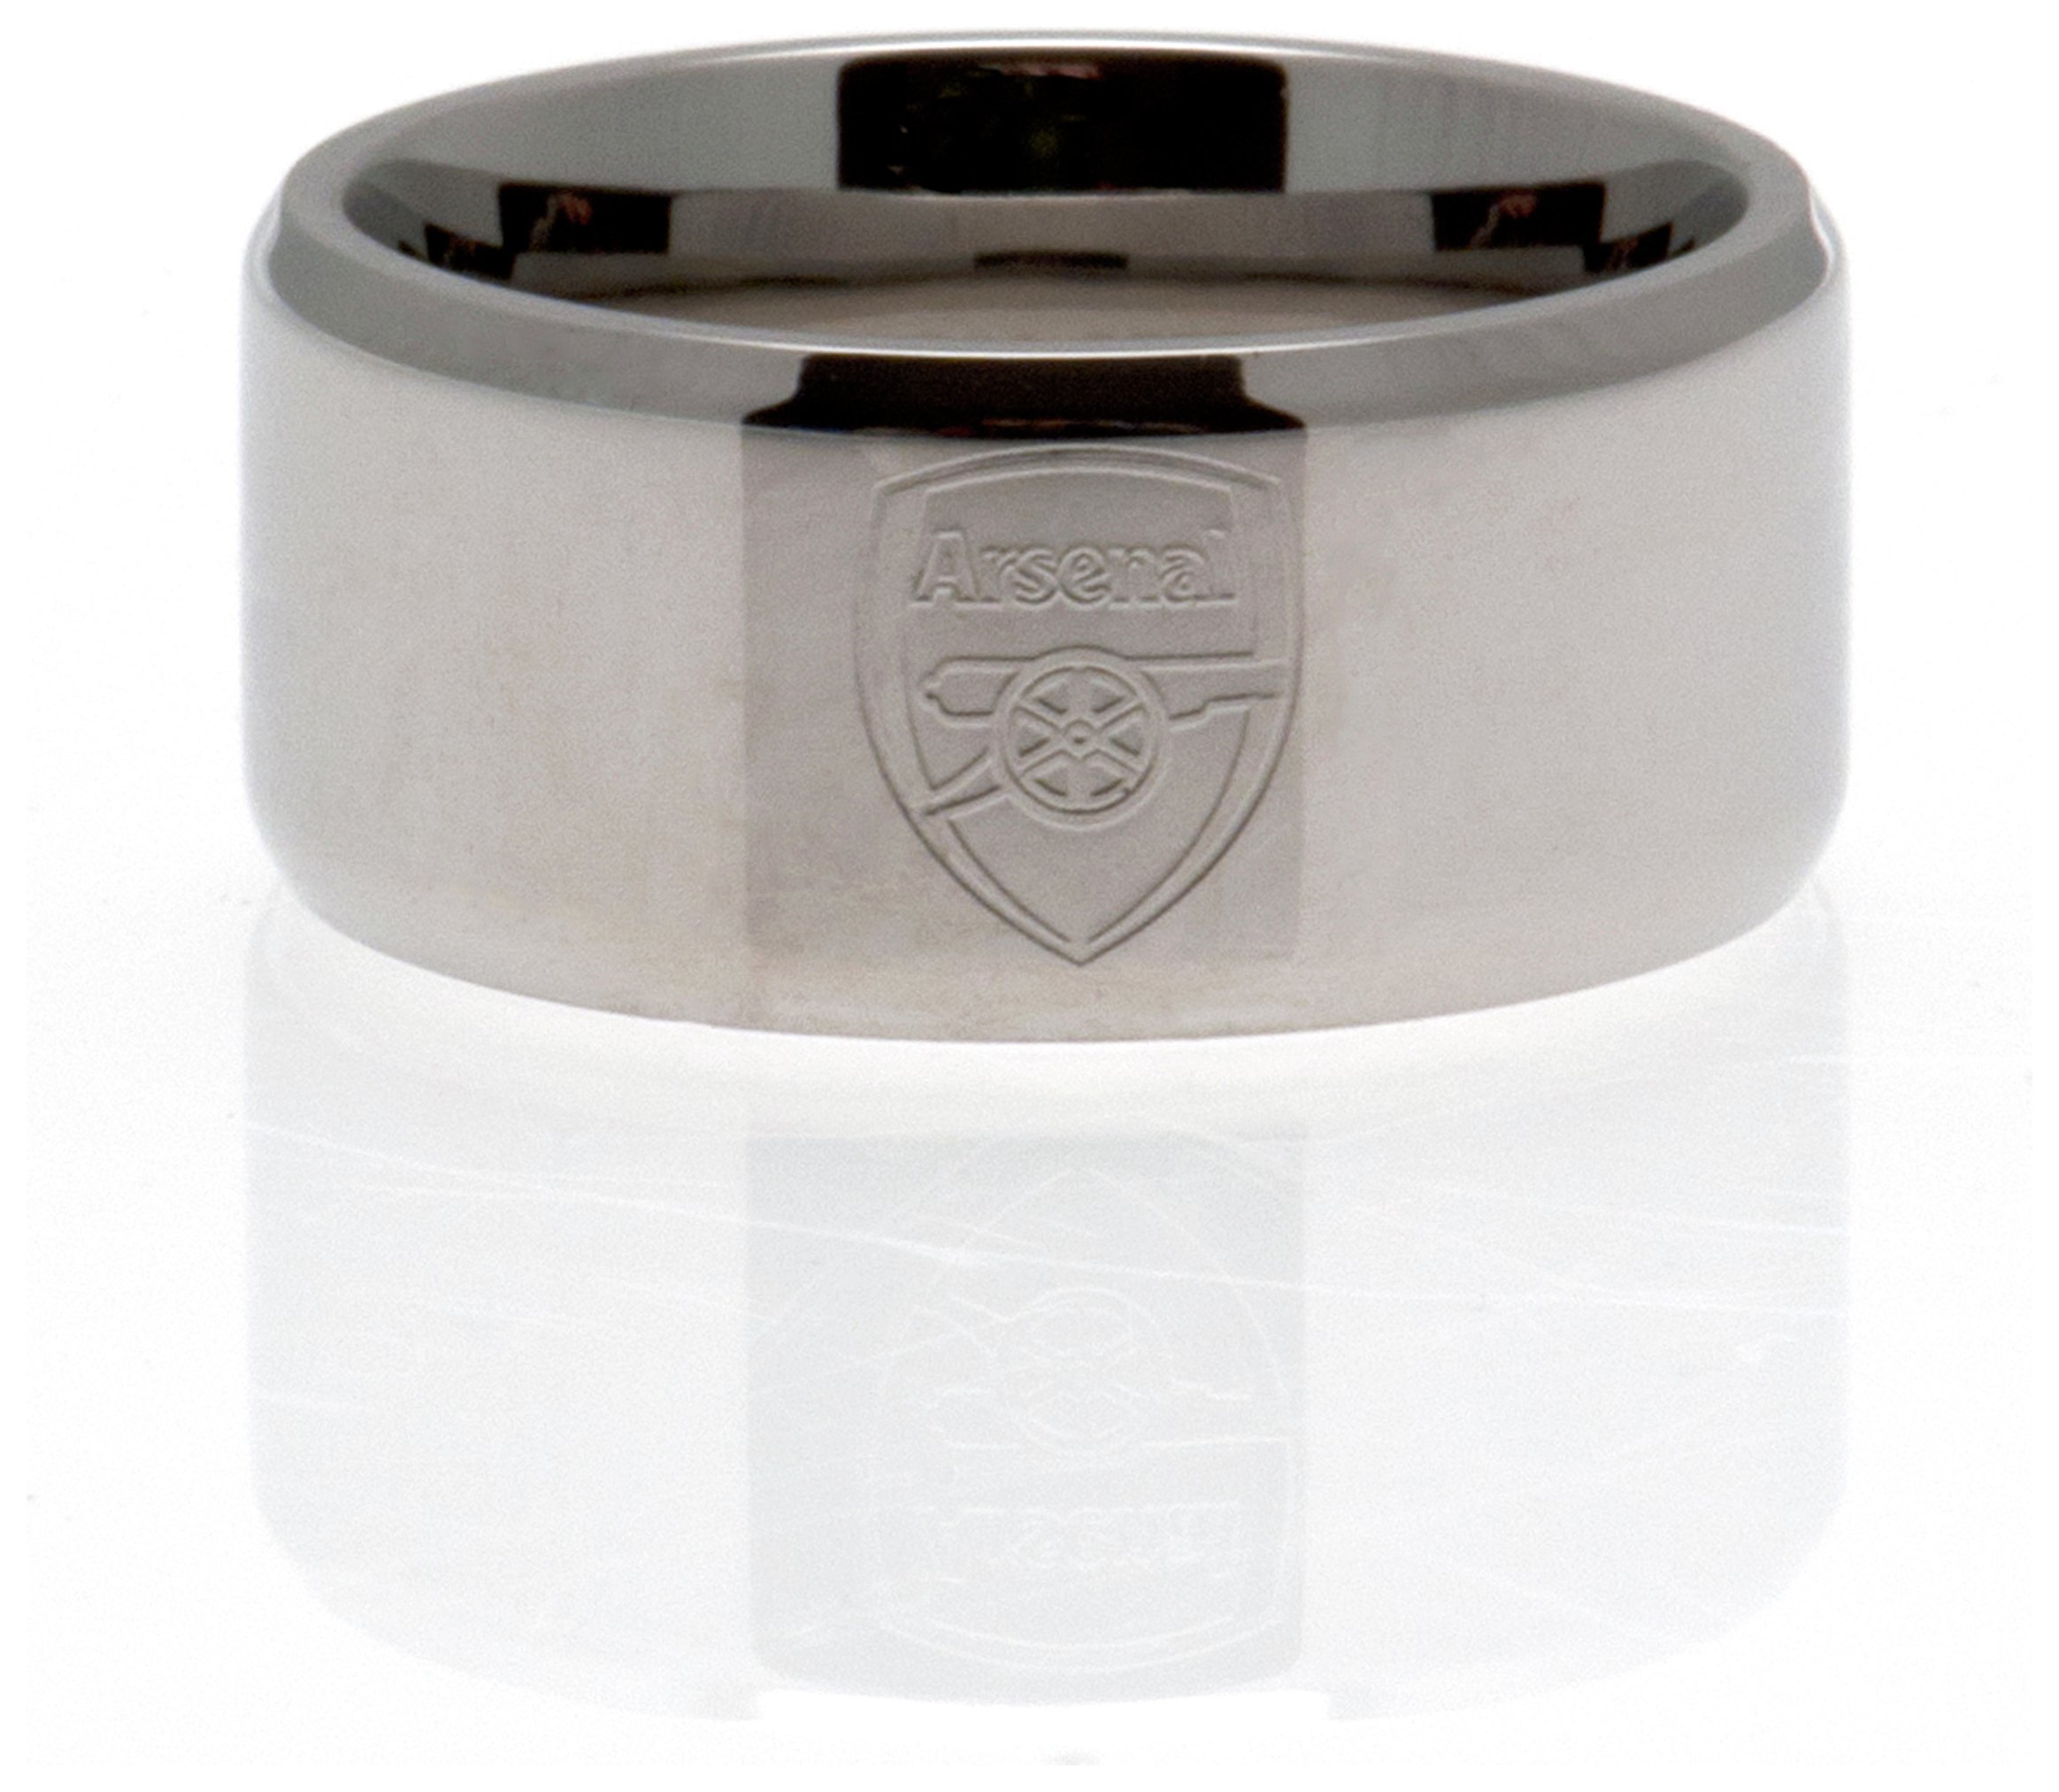 Image of Stainless Steel Arsenal Ring - Size U